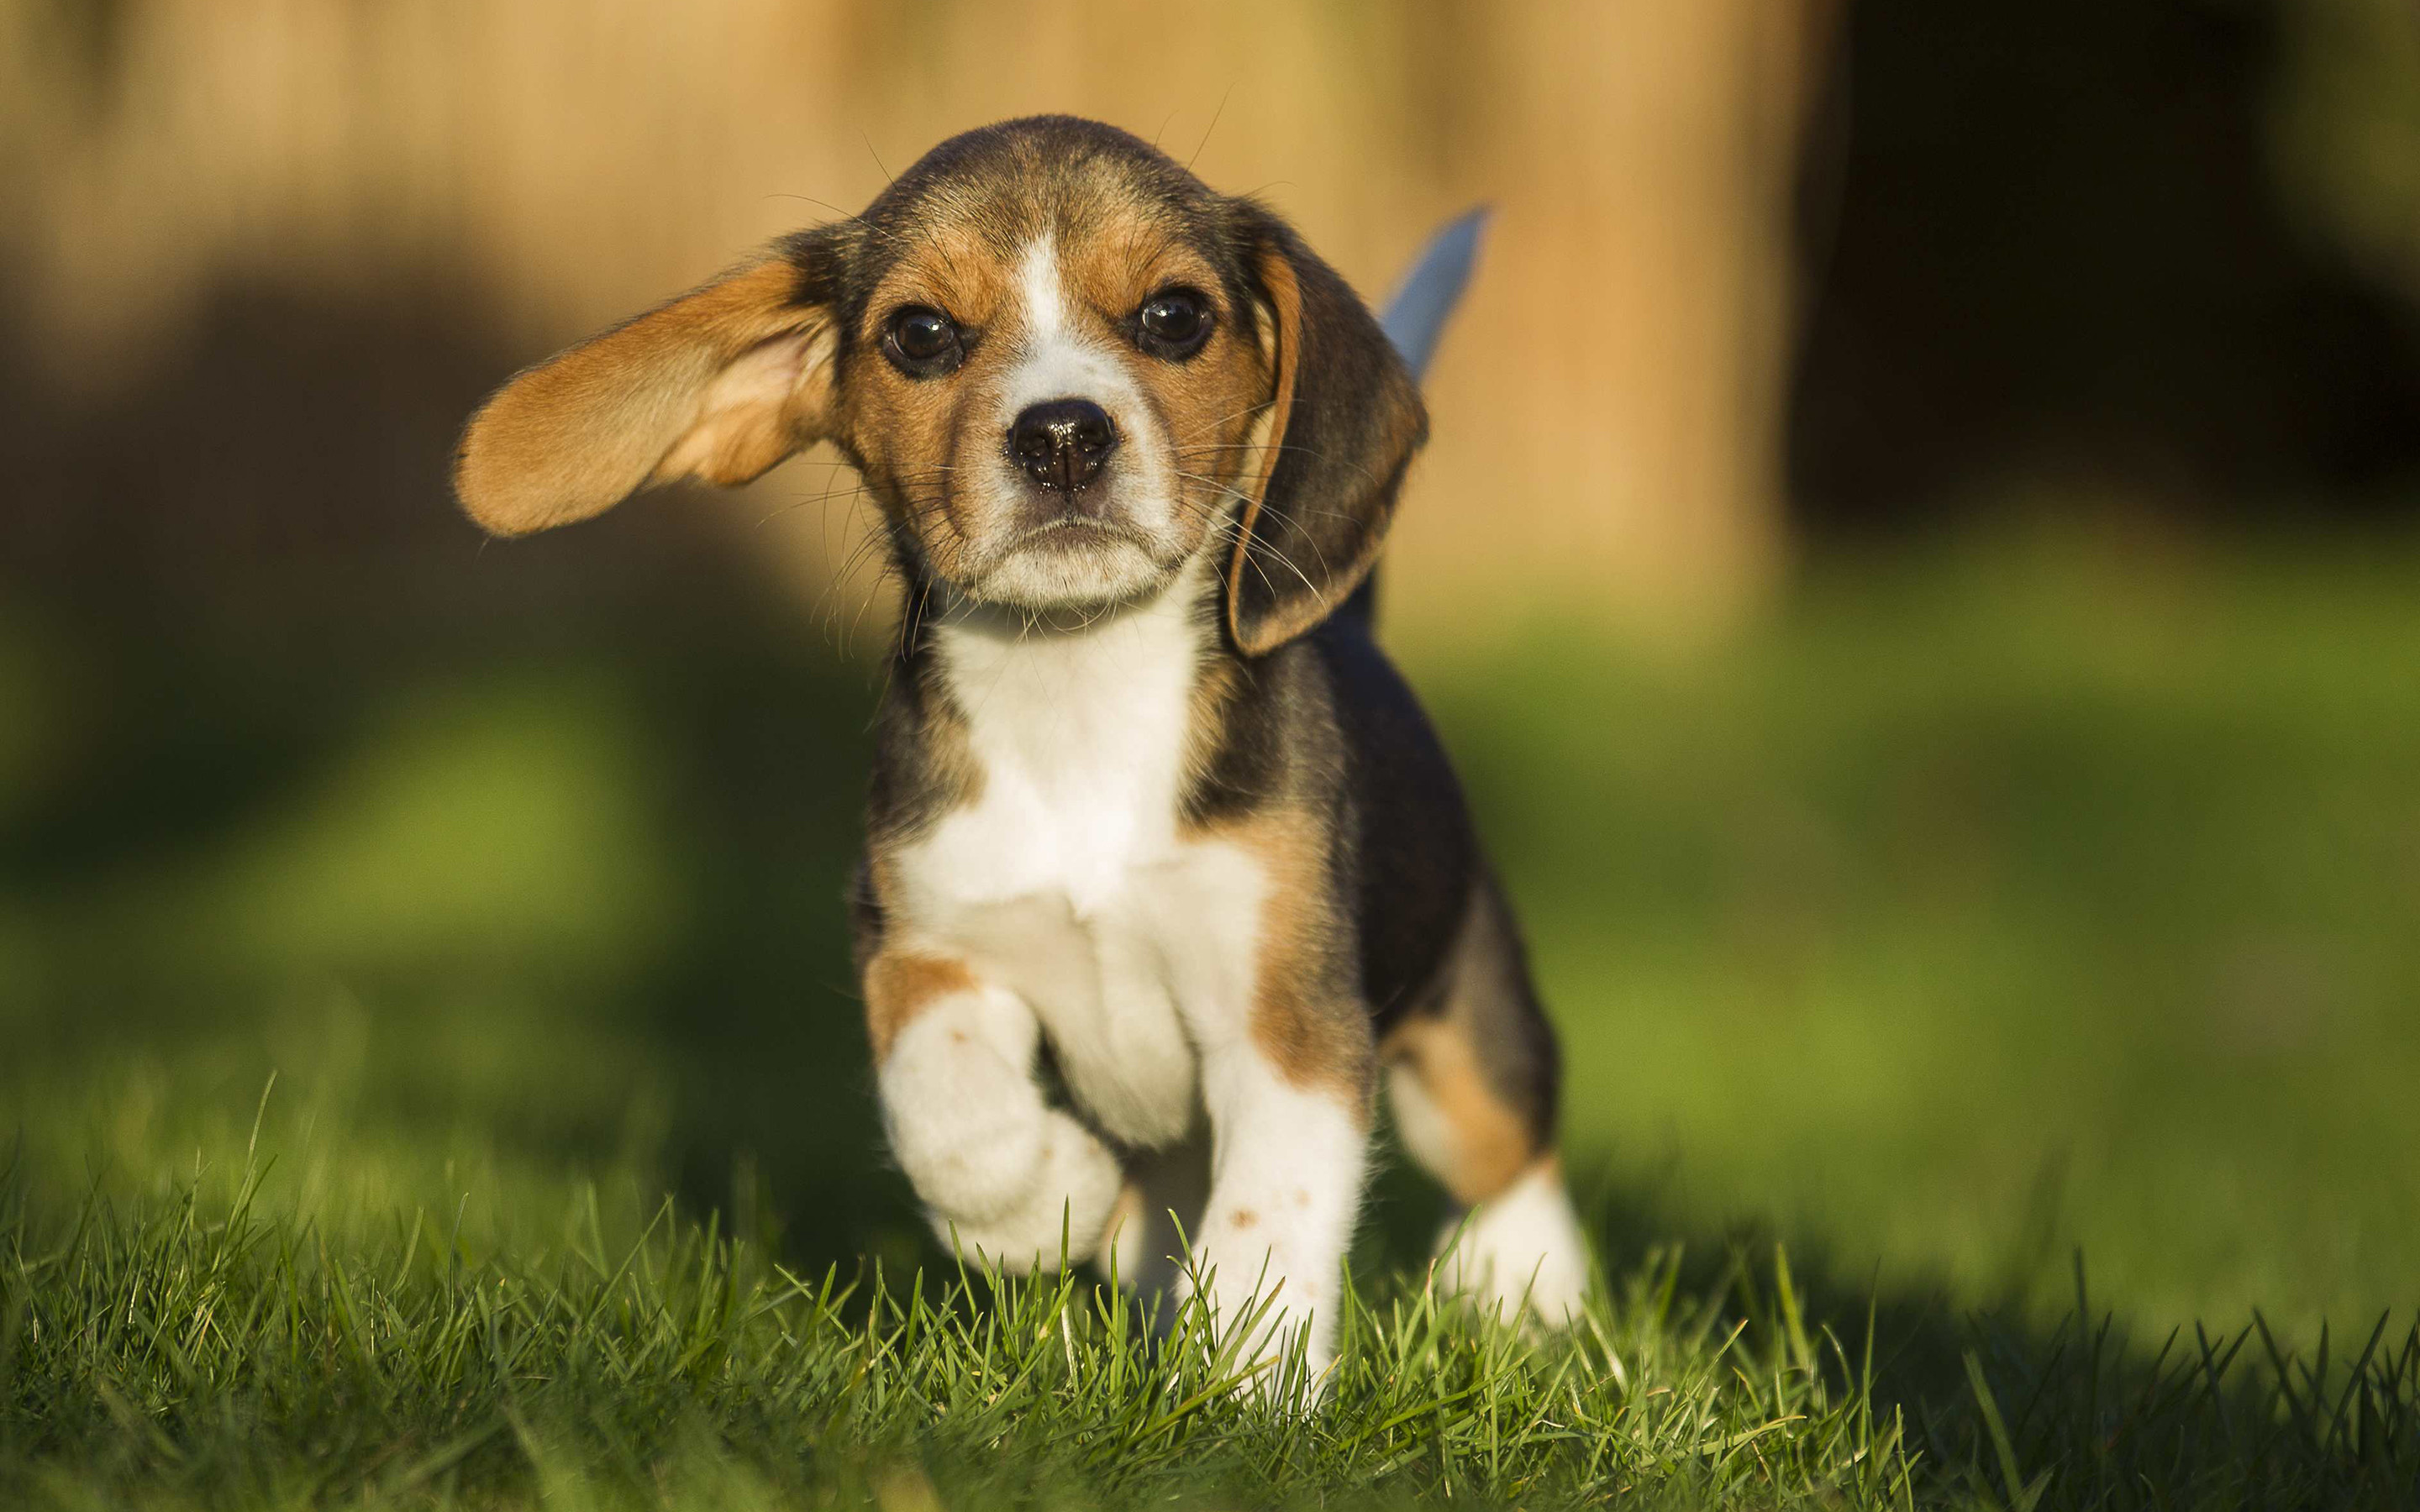 Cute Little Girl Hd Wallpapers 1080p Beagle Wallpaper 69 Images